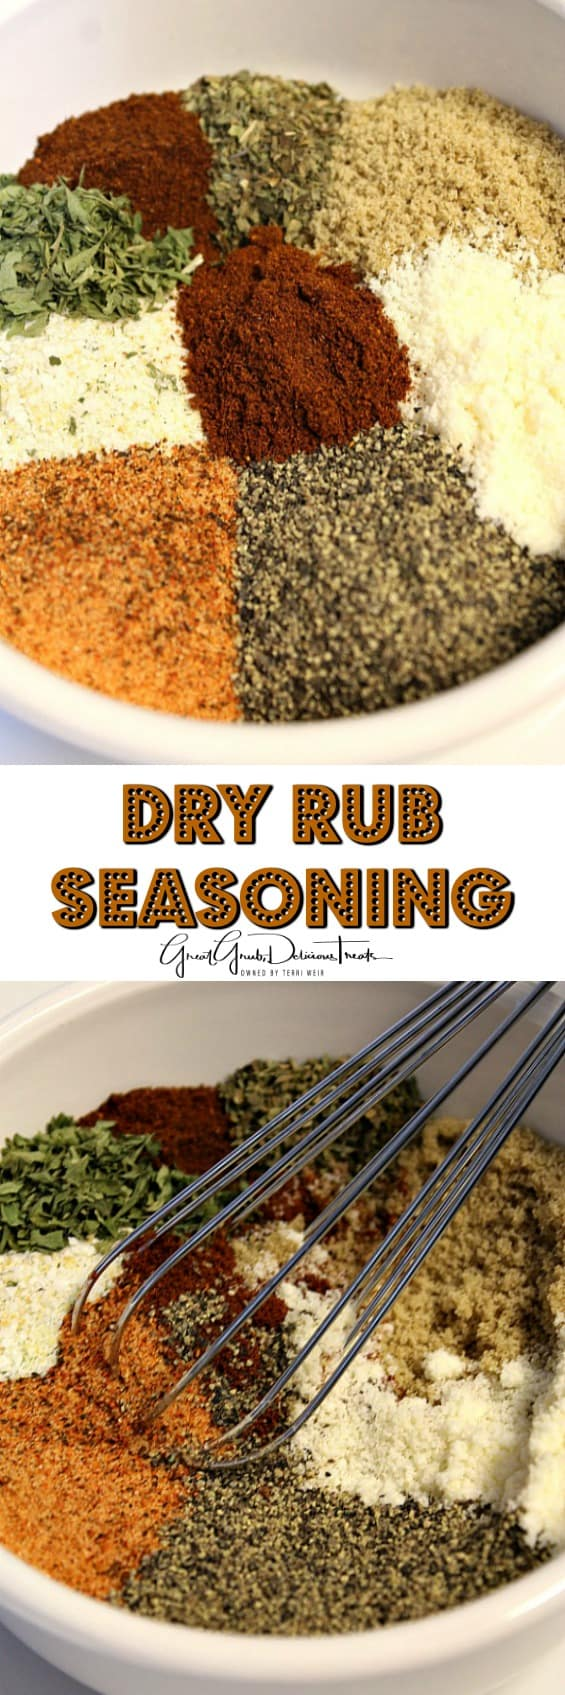 Dry Rub Seasoning